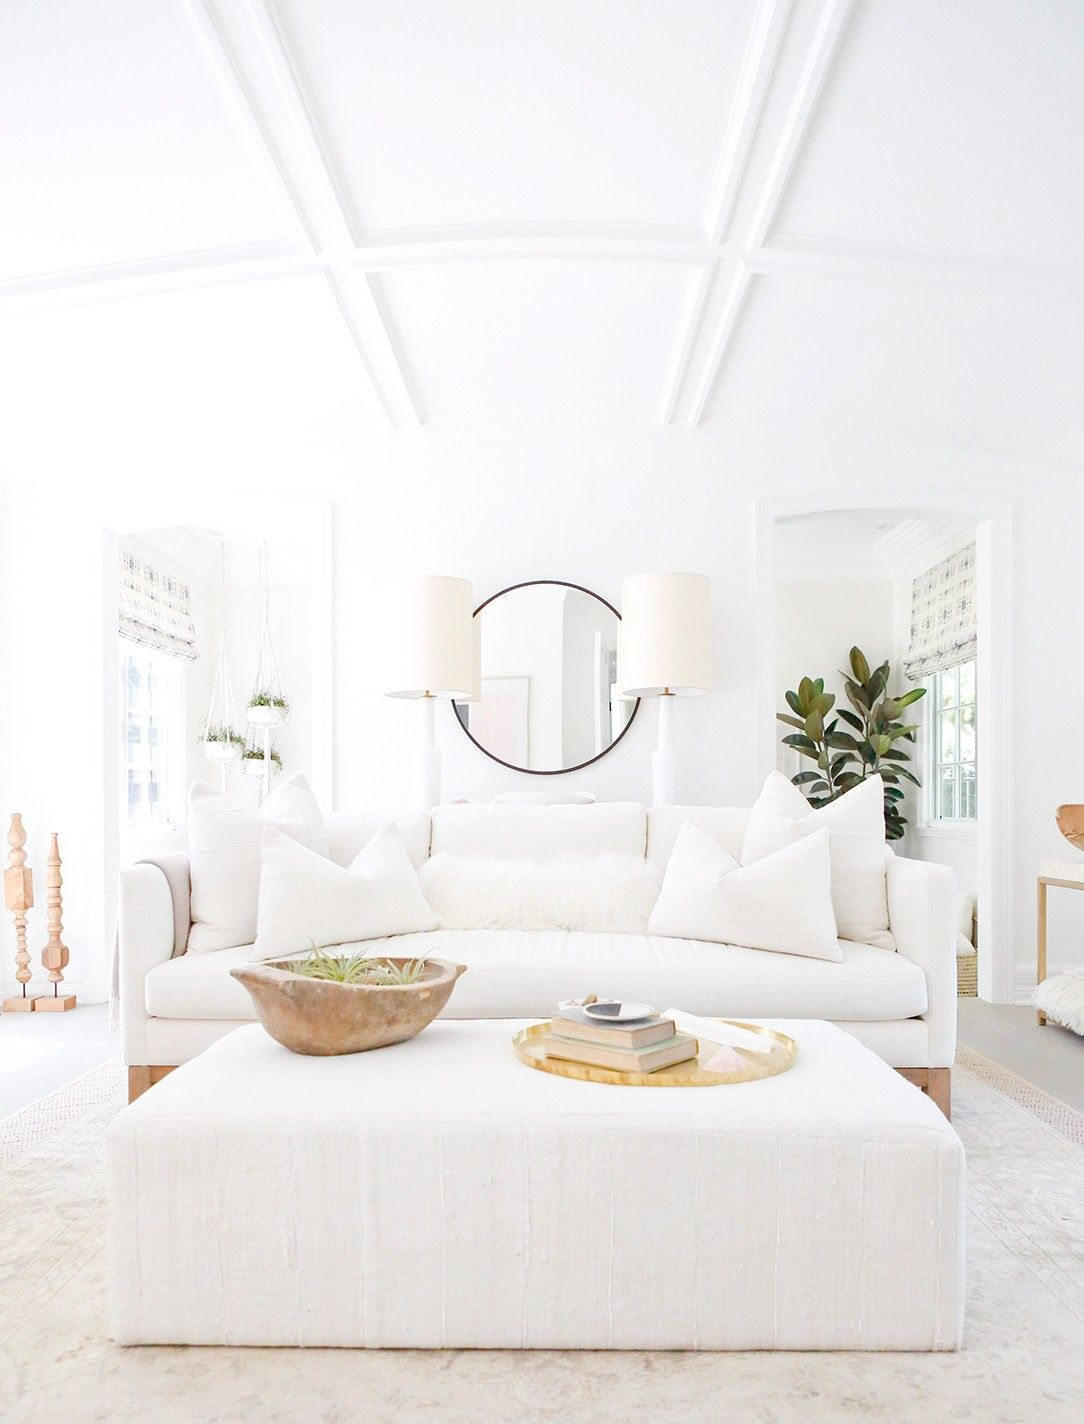 Exclusive: Inside Erin Fetherstonu0027s Bright And Airy L.A. Home Via @MyDomaine